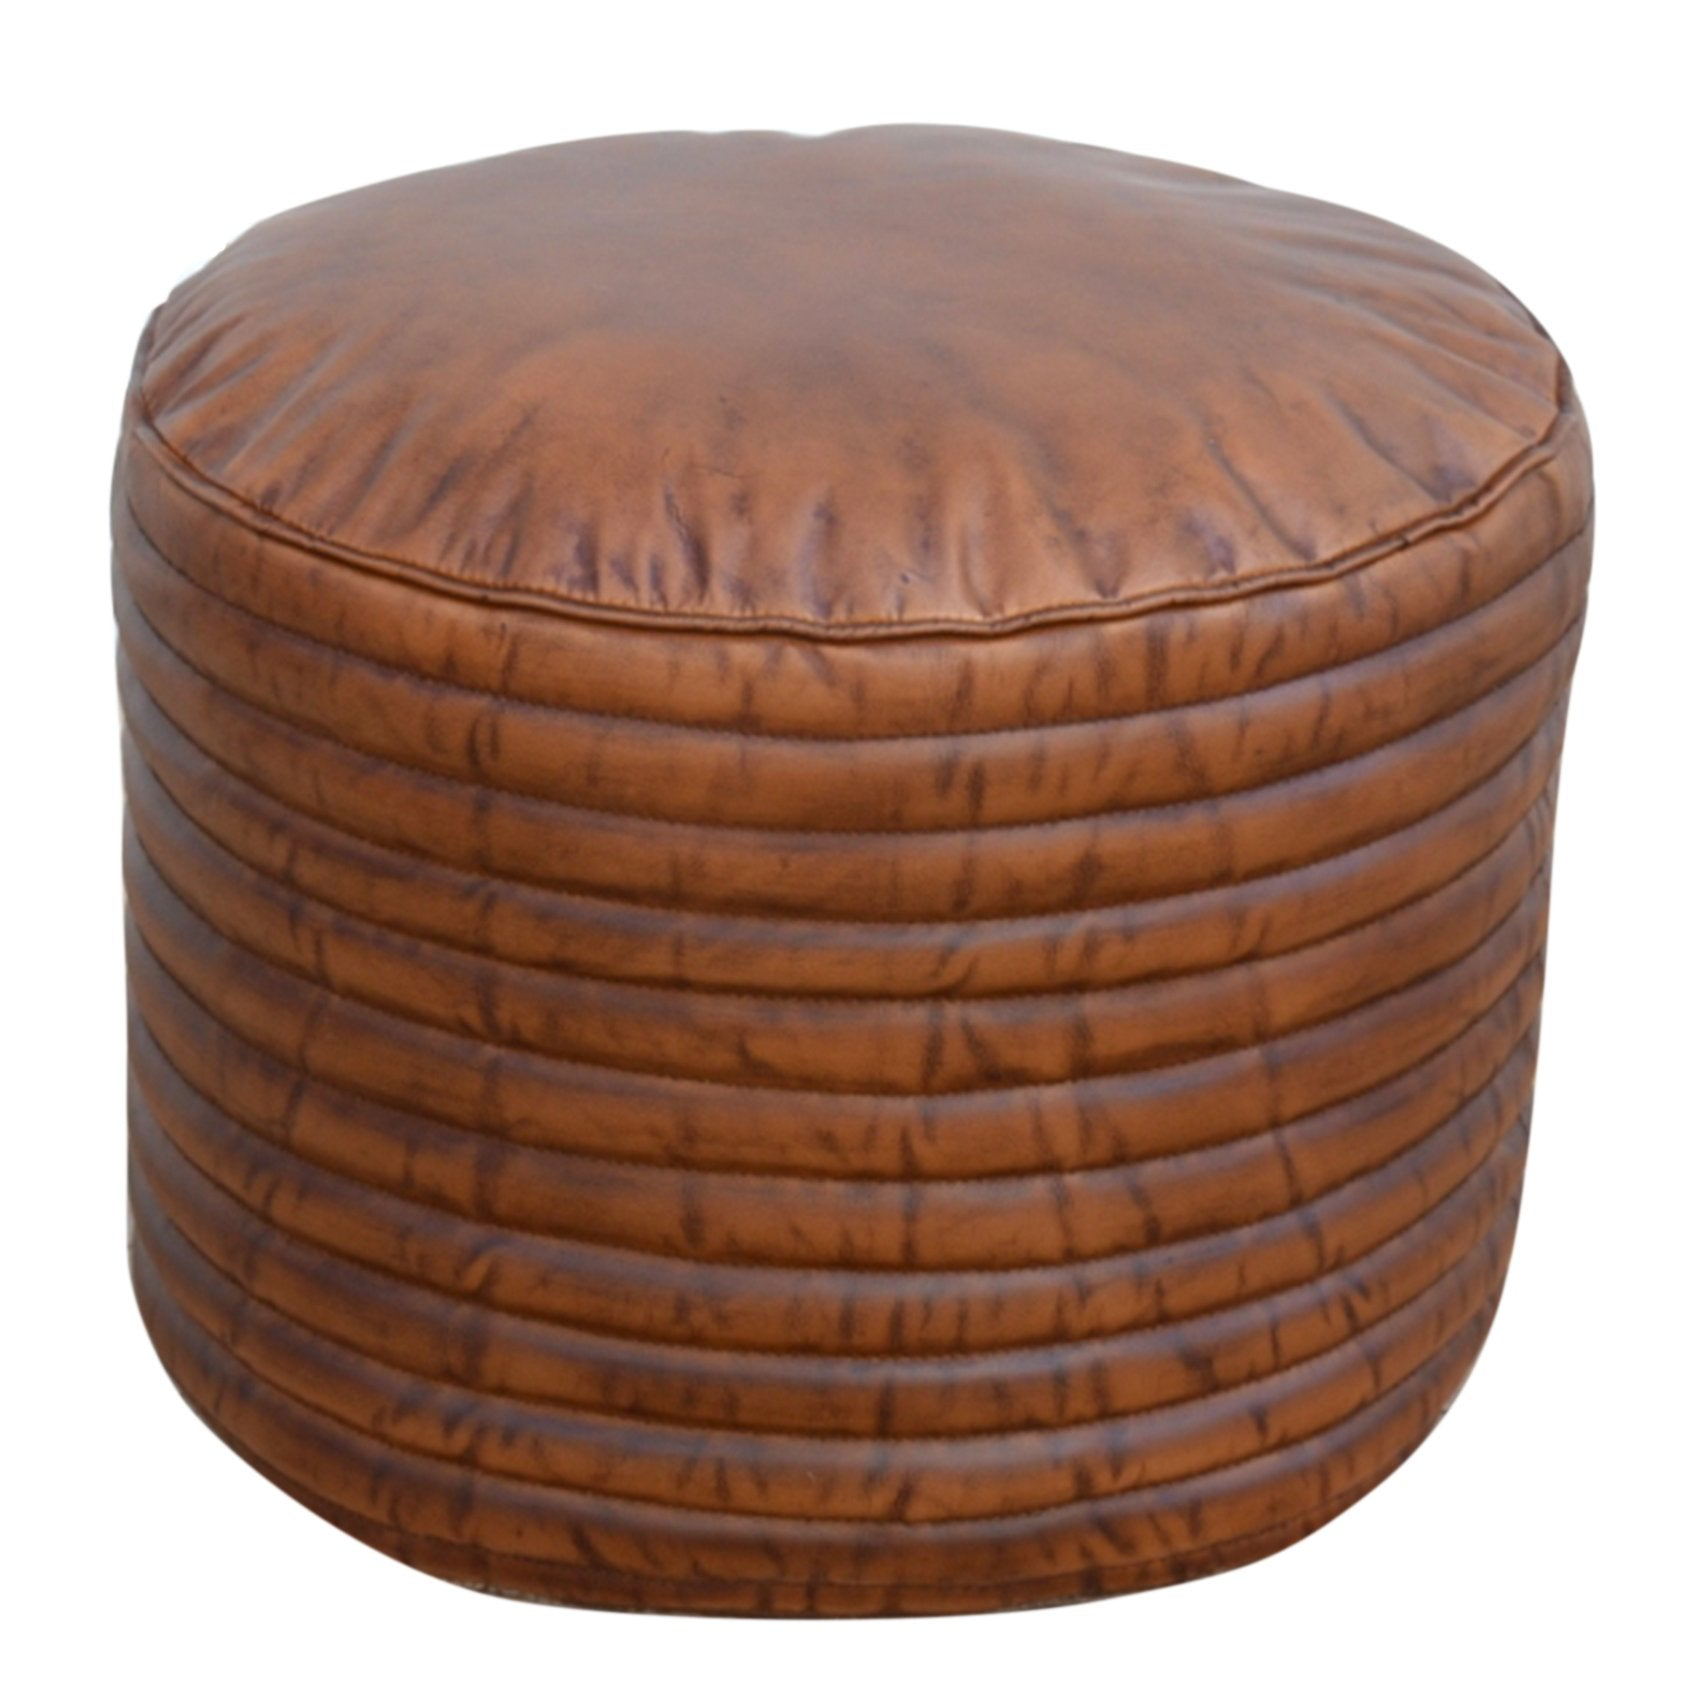 Buff Brown Leather Ottoman - decorstore